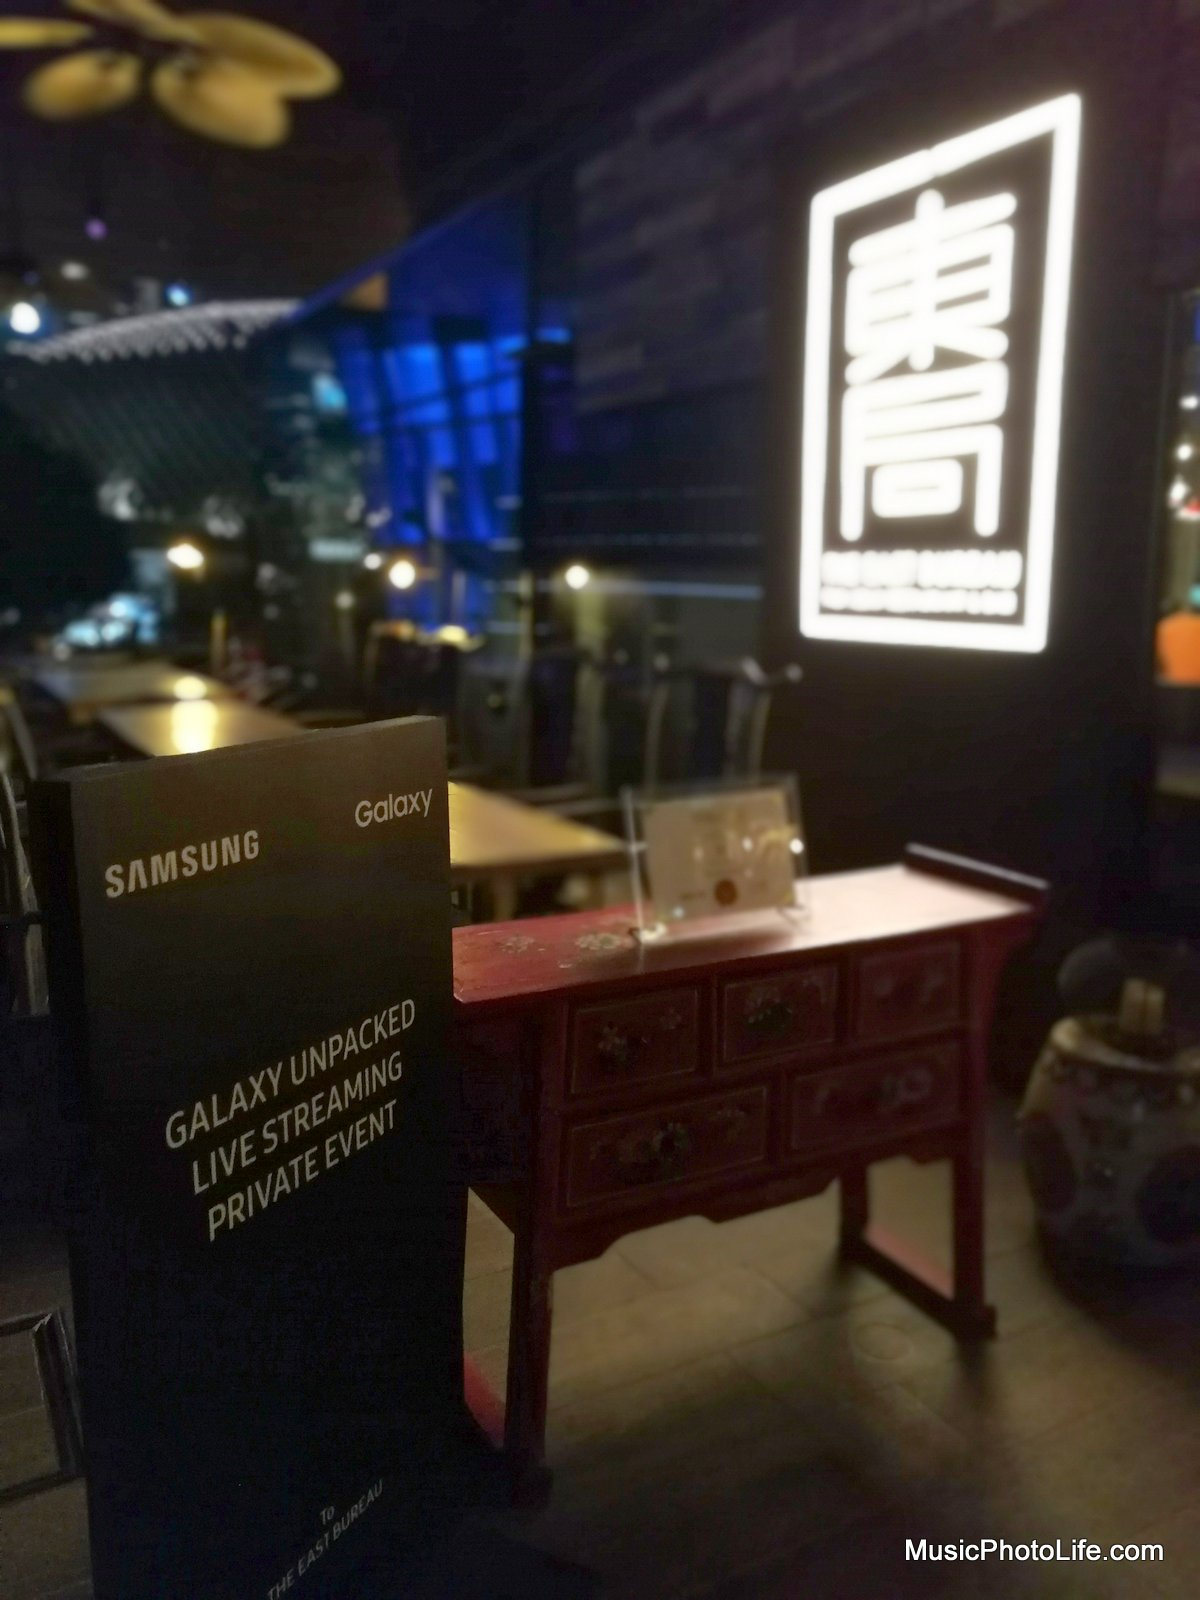 Samsung Galaxy Unpacked Live Streaming event in Singapore